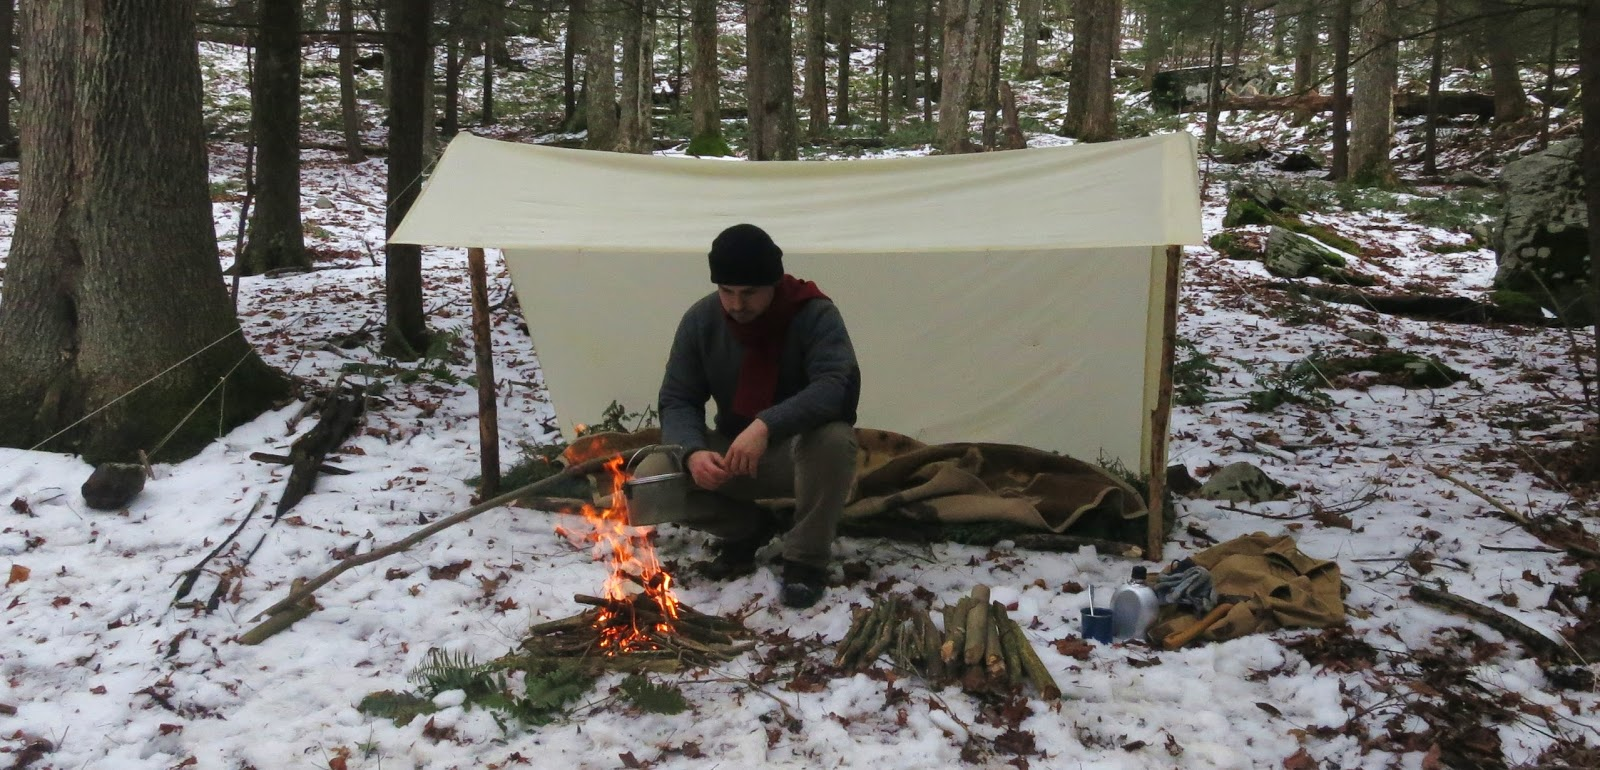 In terms of design I decided to go with a tarp for several reasons. For starters Iu0027ve decided to rely just on a blanket for warmth am issue I will ... & Wood Trekker: Classic Backpacking Gear - Shelters